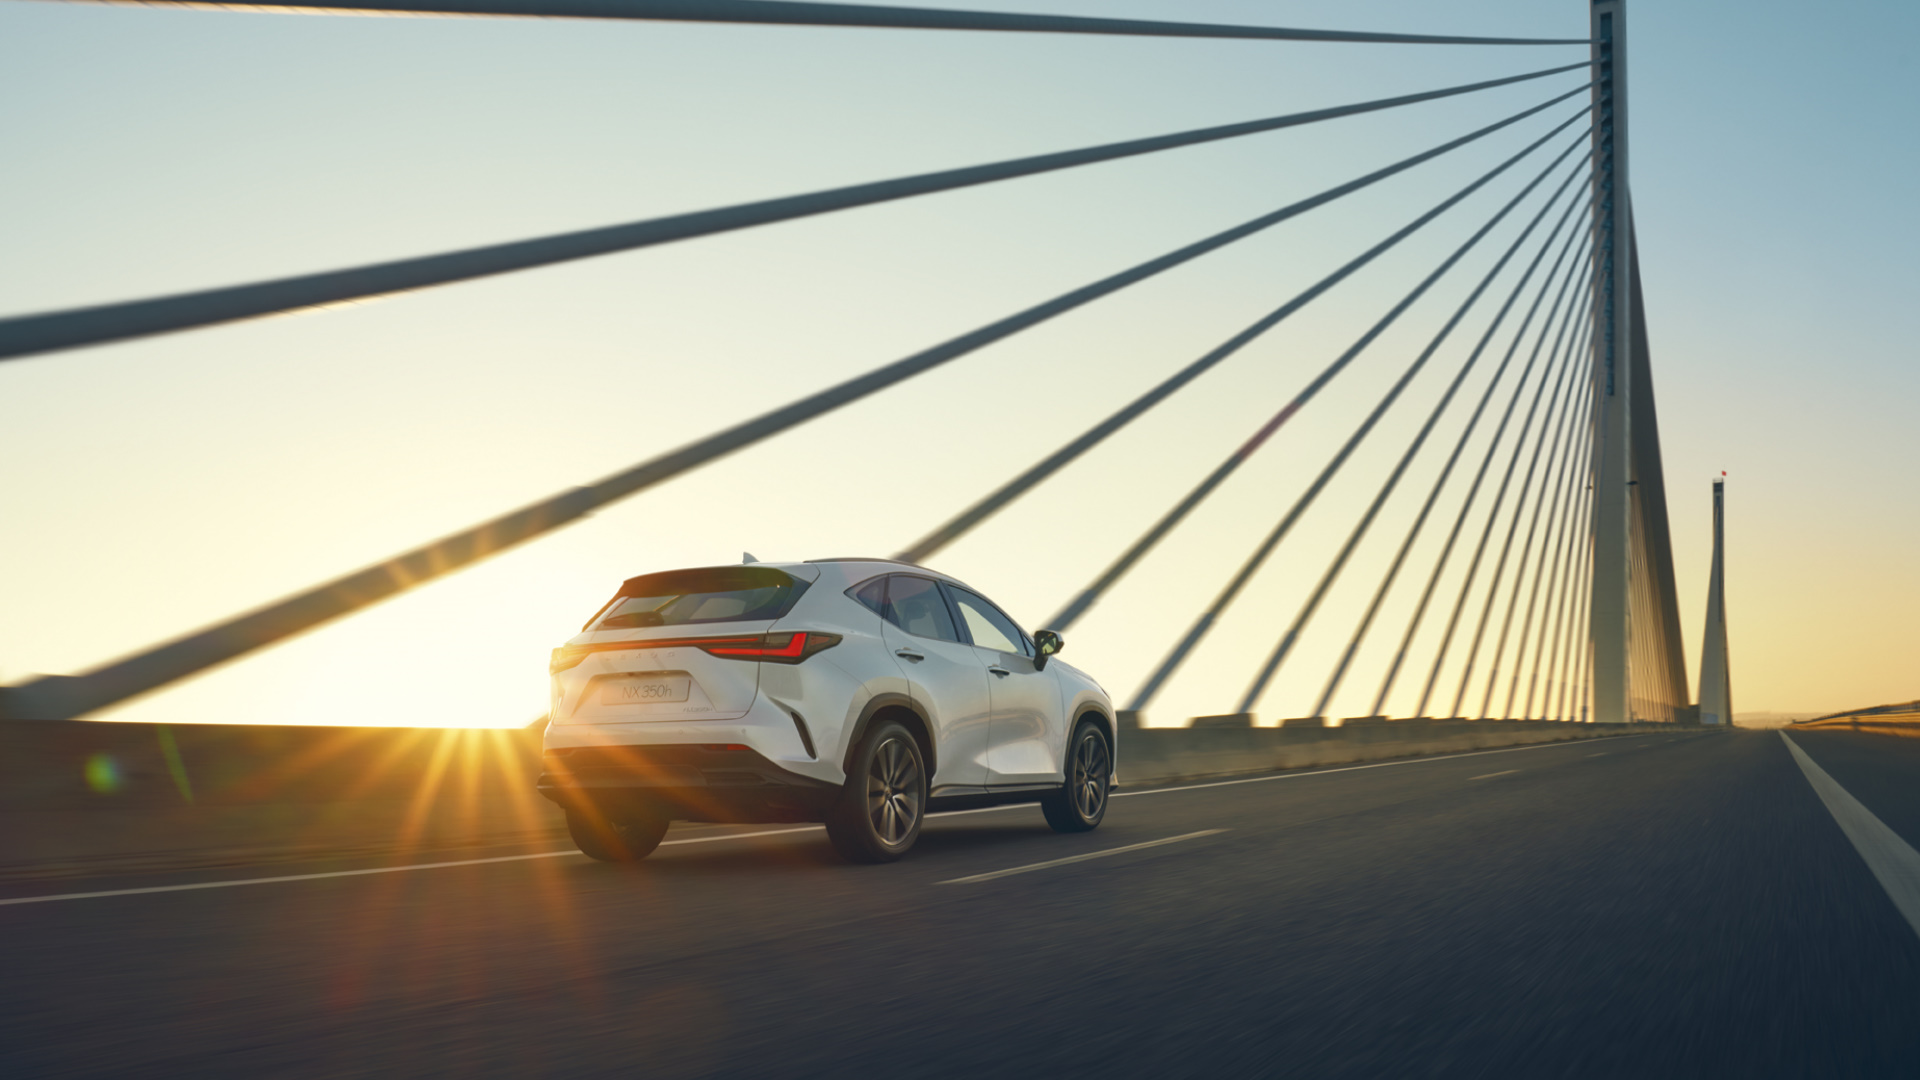 Copy of 2022 all new nx gallery 007